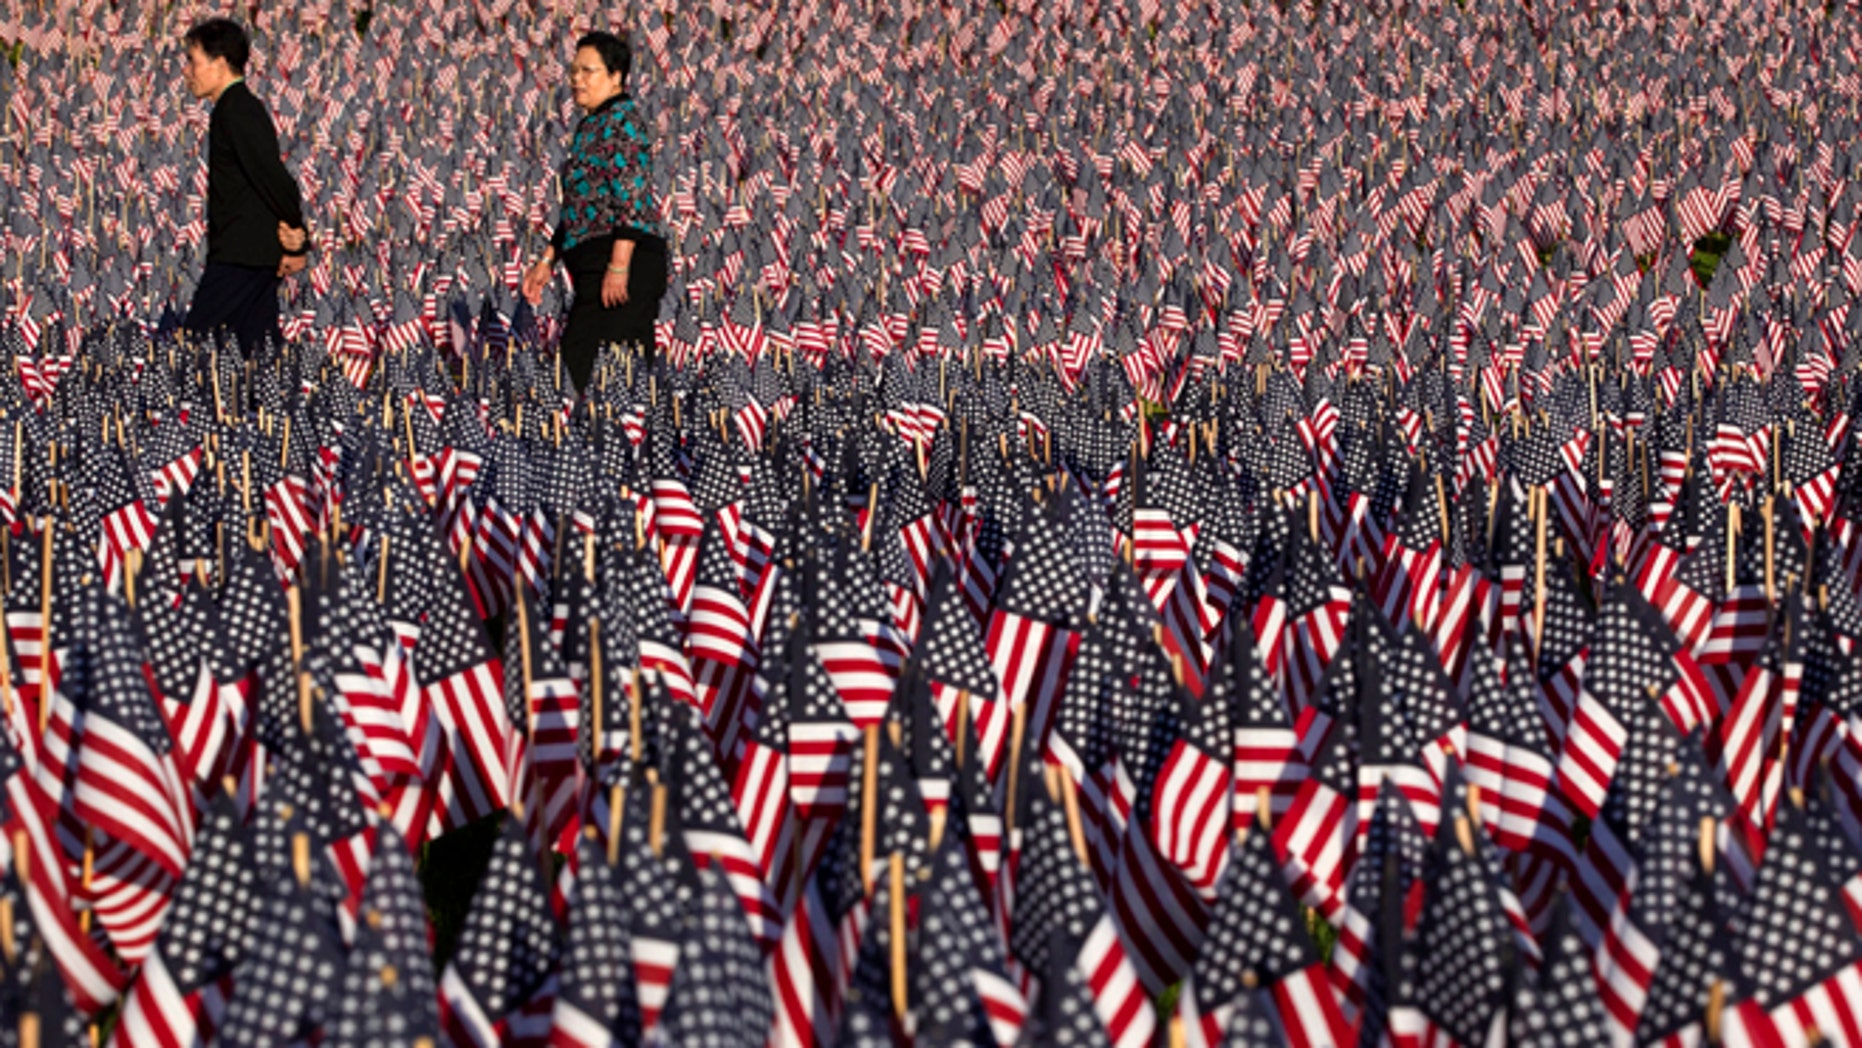 May 23, 2012: People walk through a portion of the Boston Common covered with American flags. Relatives and volunteers planted the 33,000 flags in the historic park in advance of the Memorial Day weekend, in tribute to Massachusetts soldiers killed in conflicts as far back as the Civil War.